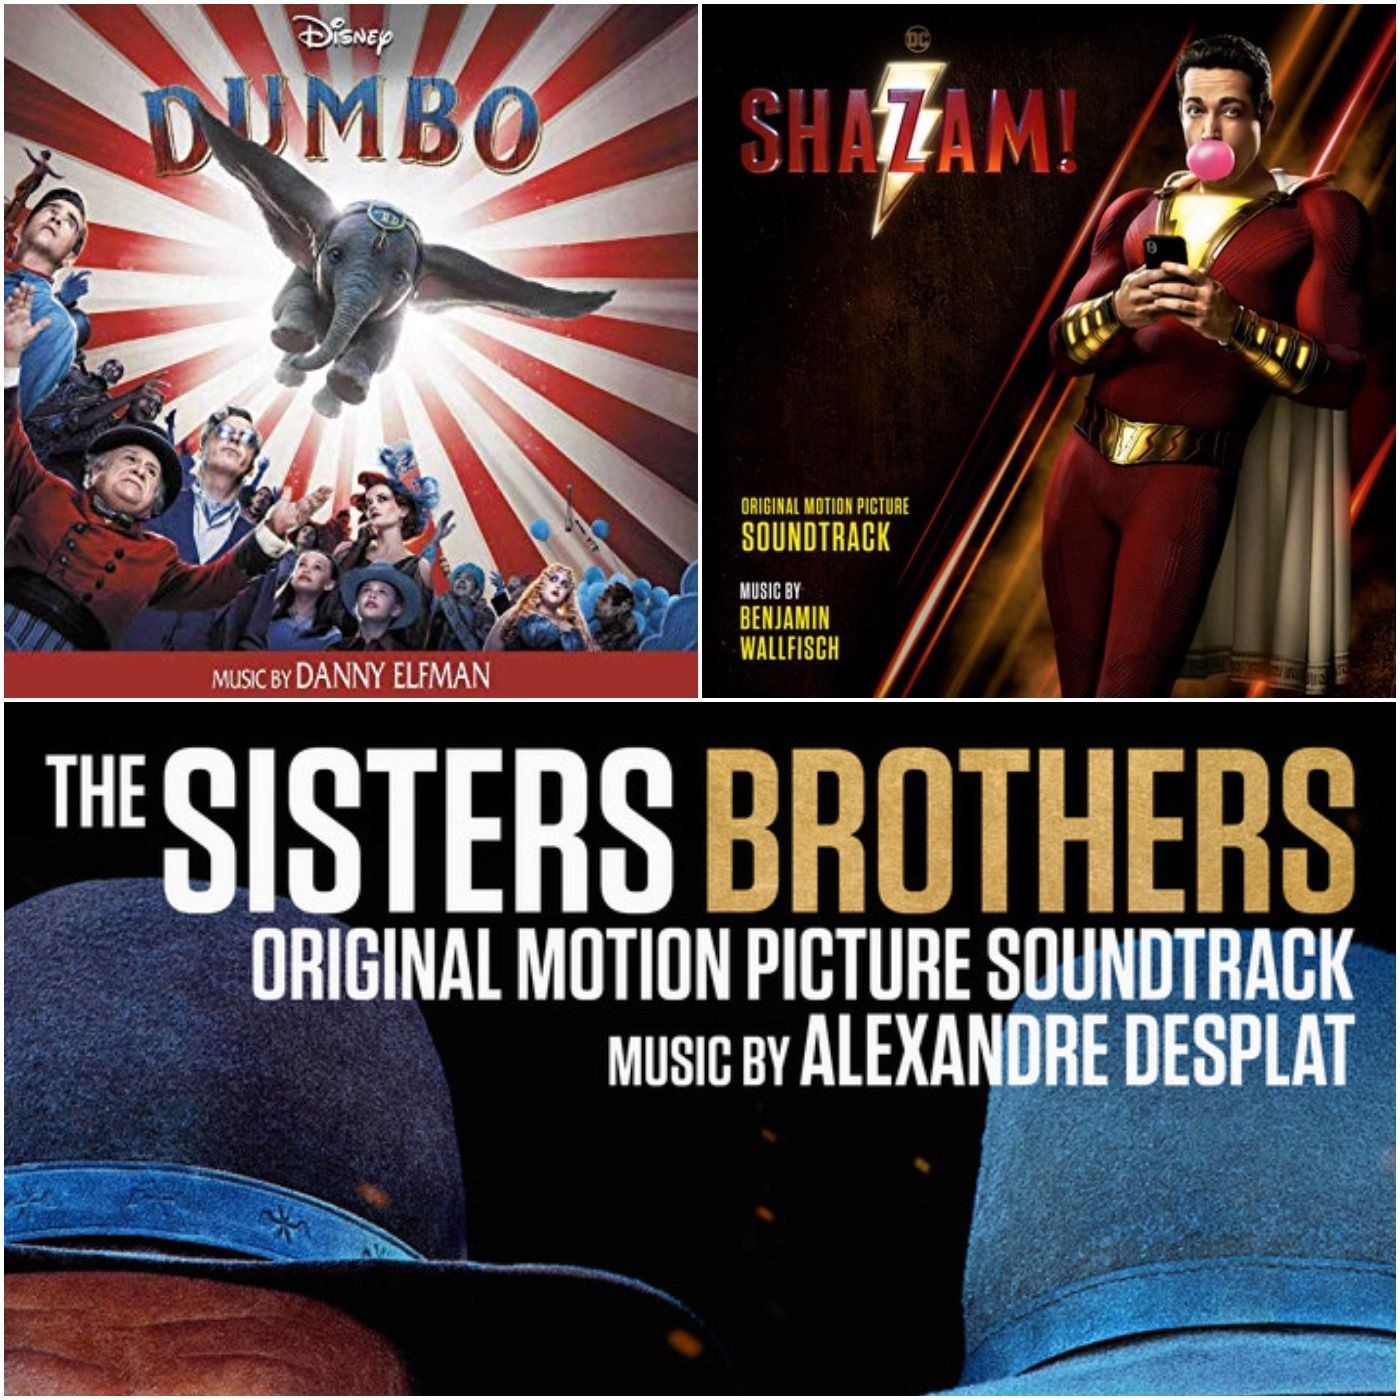 5. Dumbo / The Sisters Brothers / Shazam! / Top 10 James Horner (Pt 2)